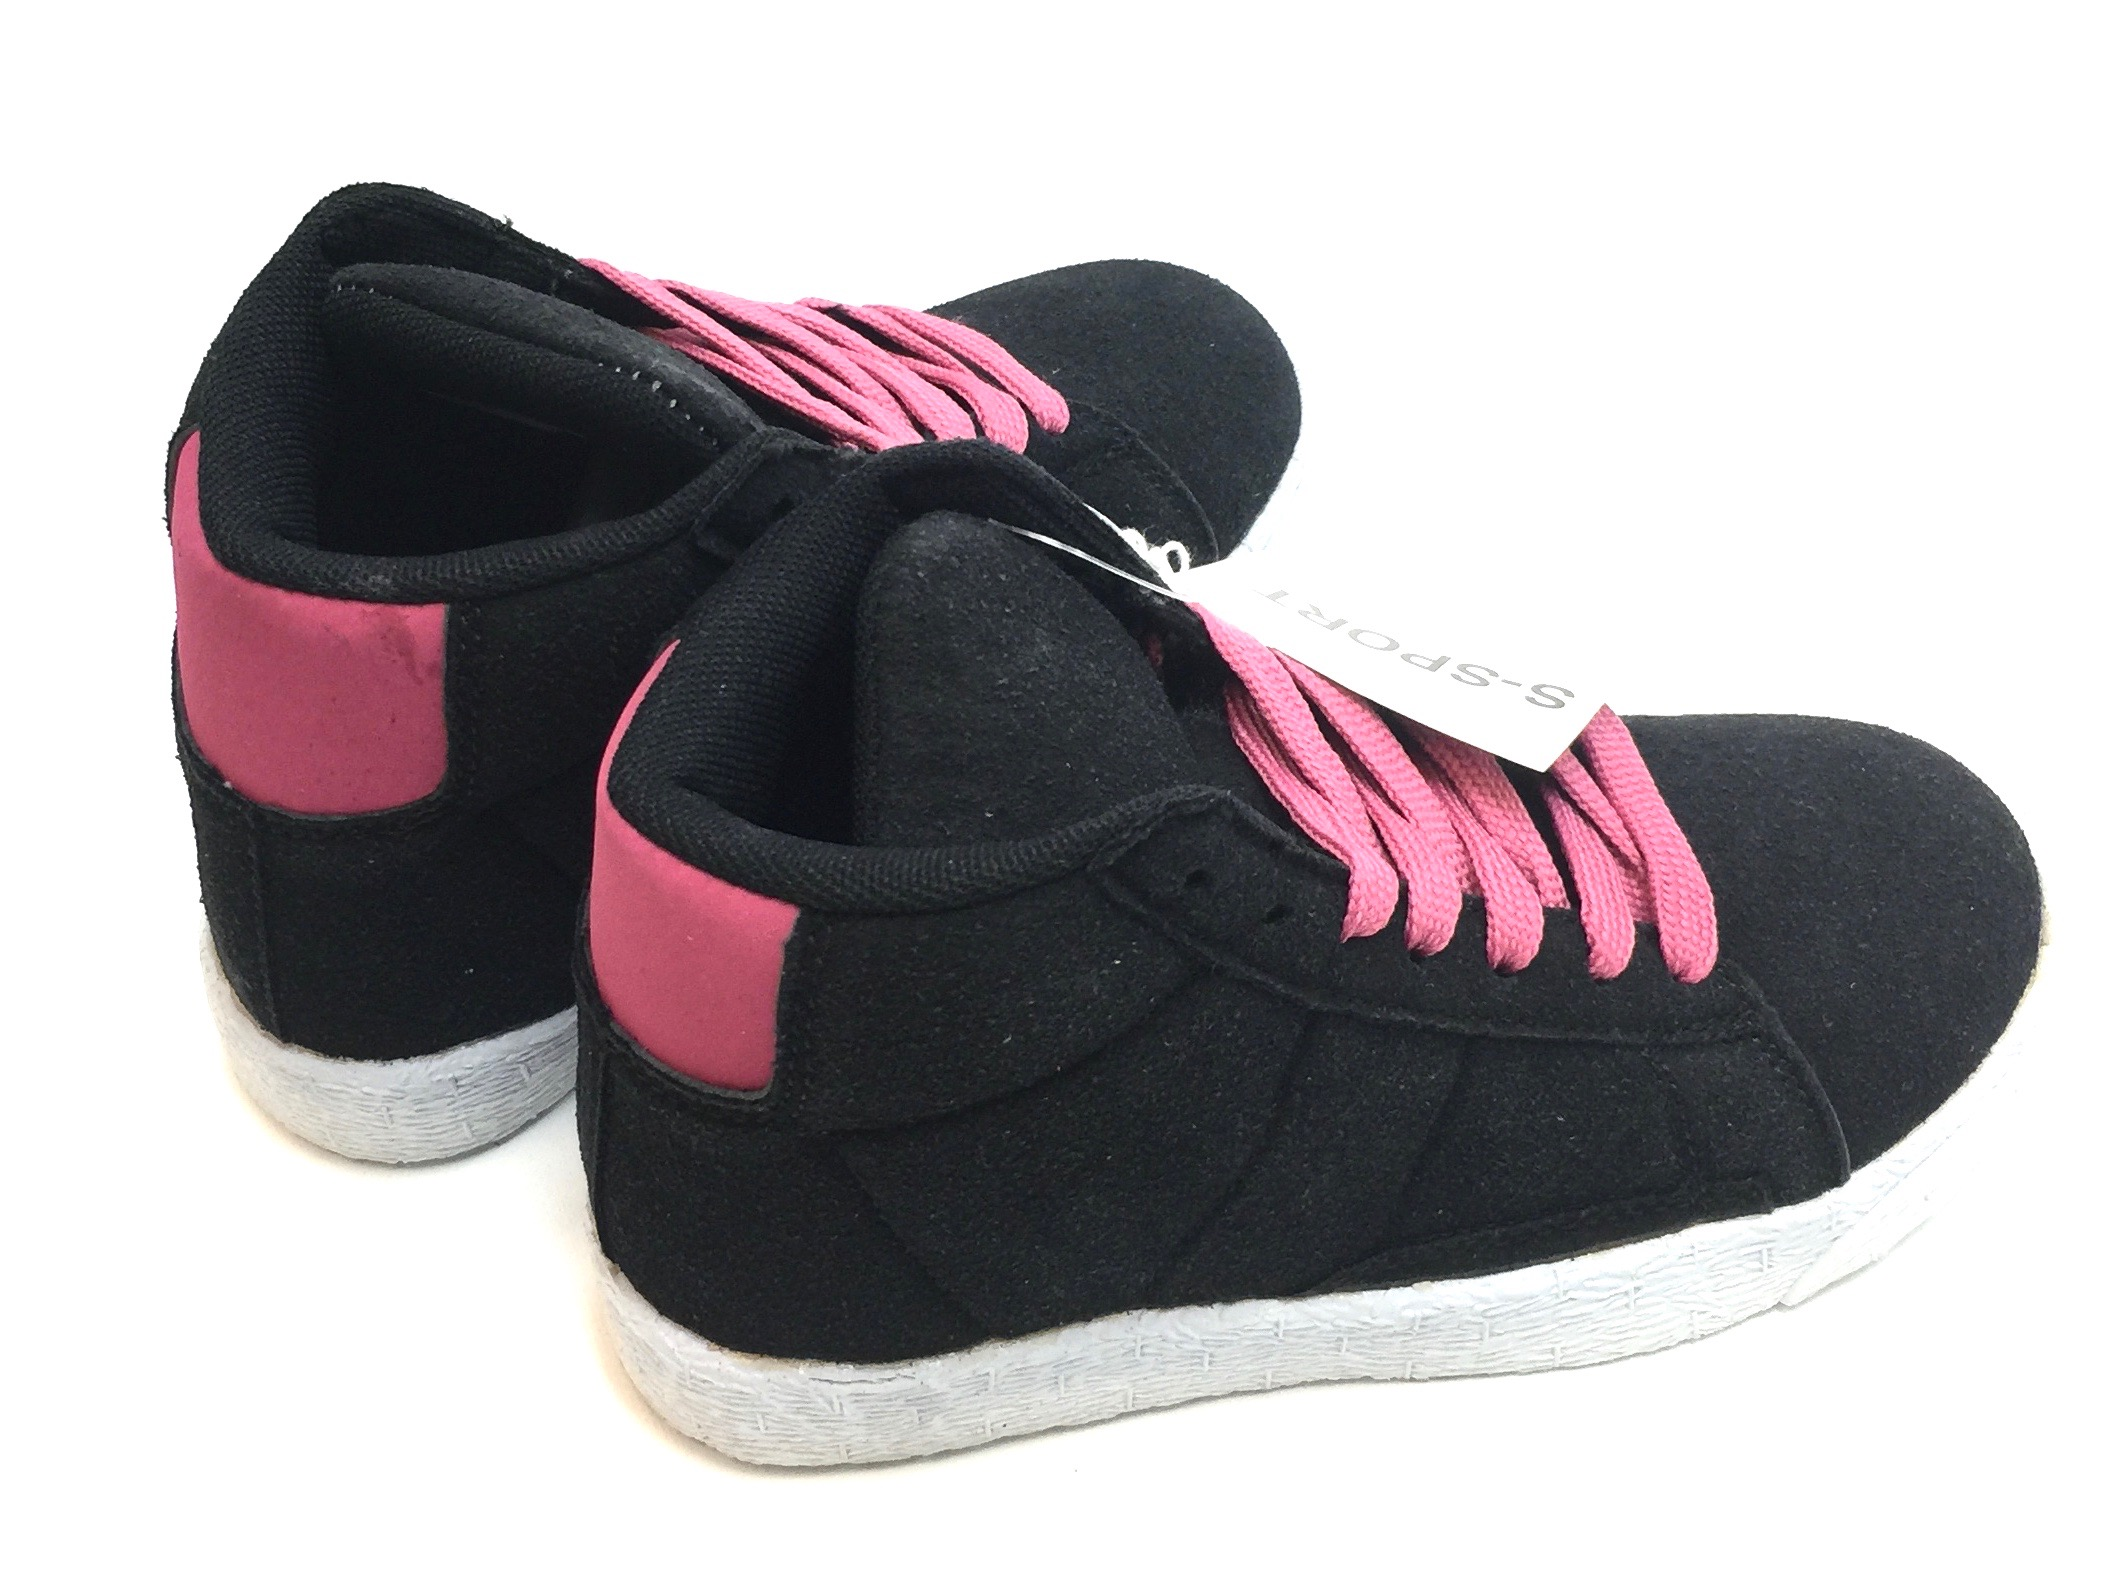 Kids Hightop Sneaker Black/Pink